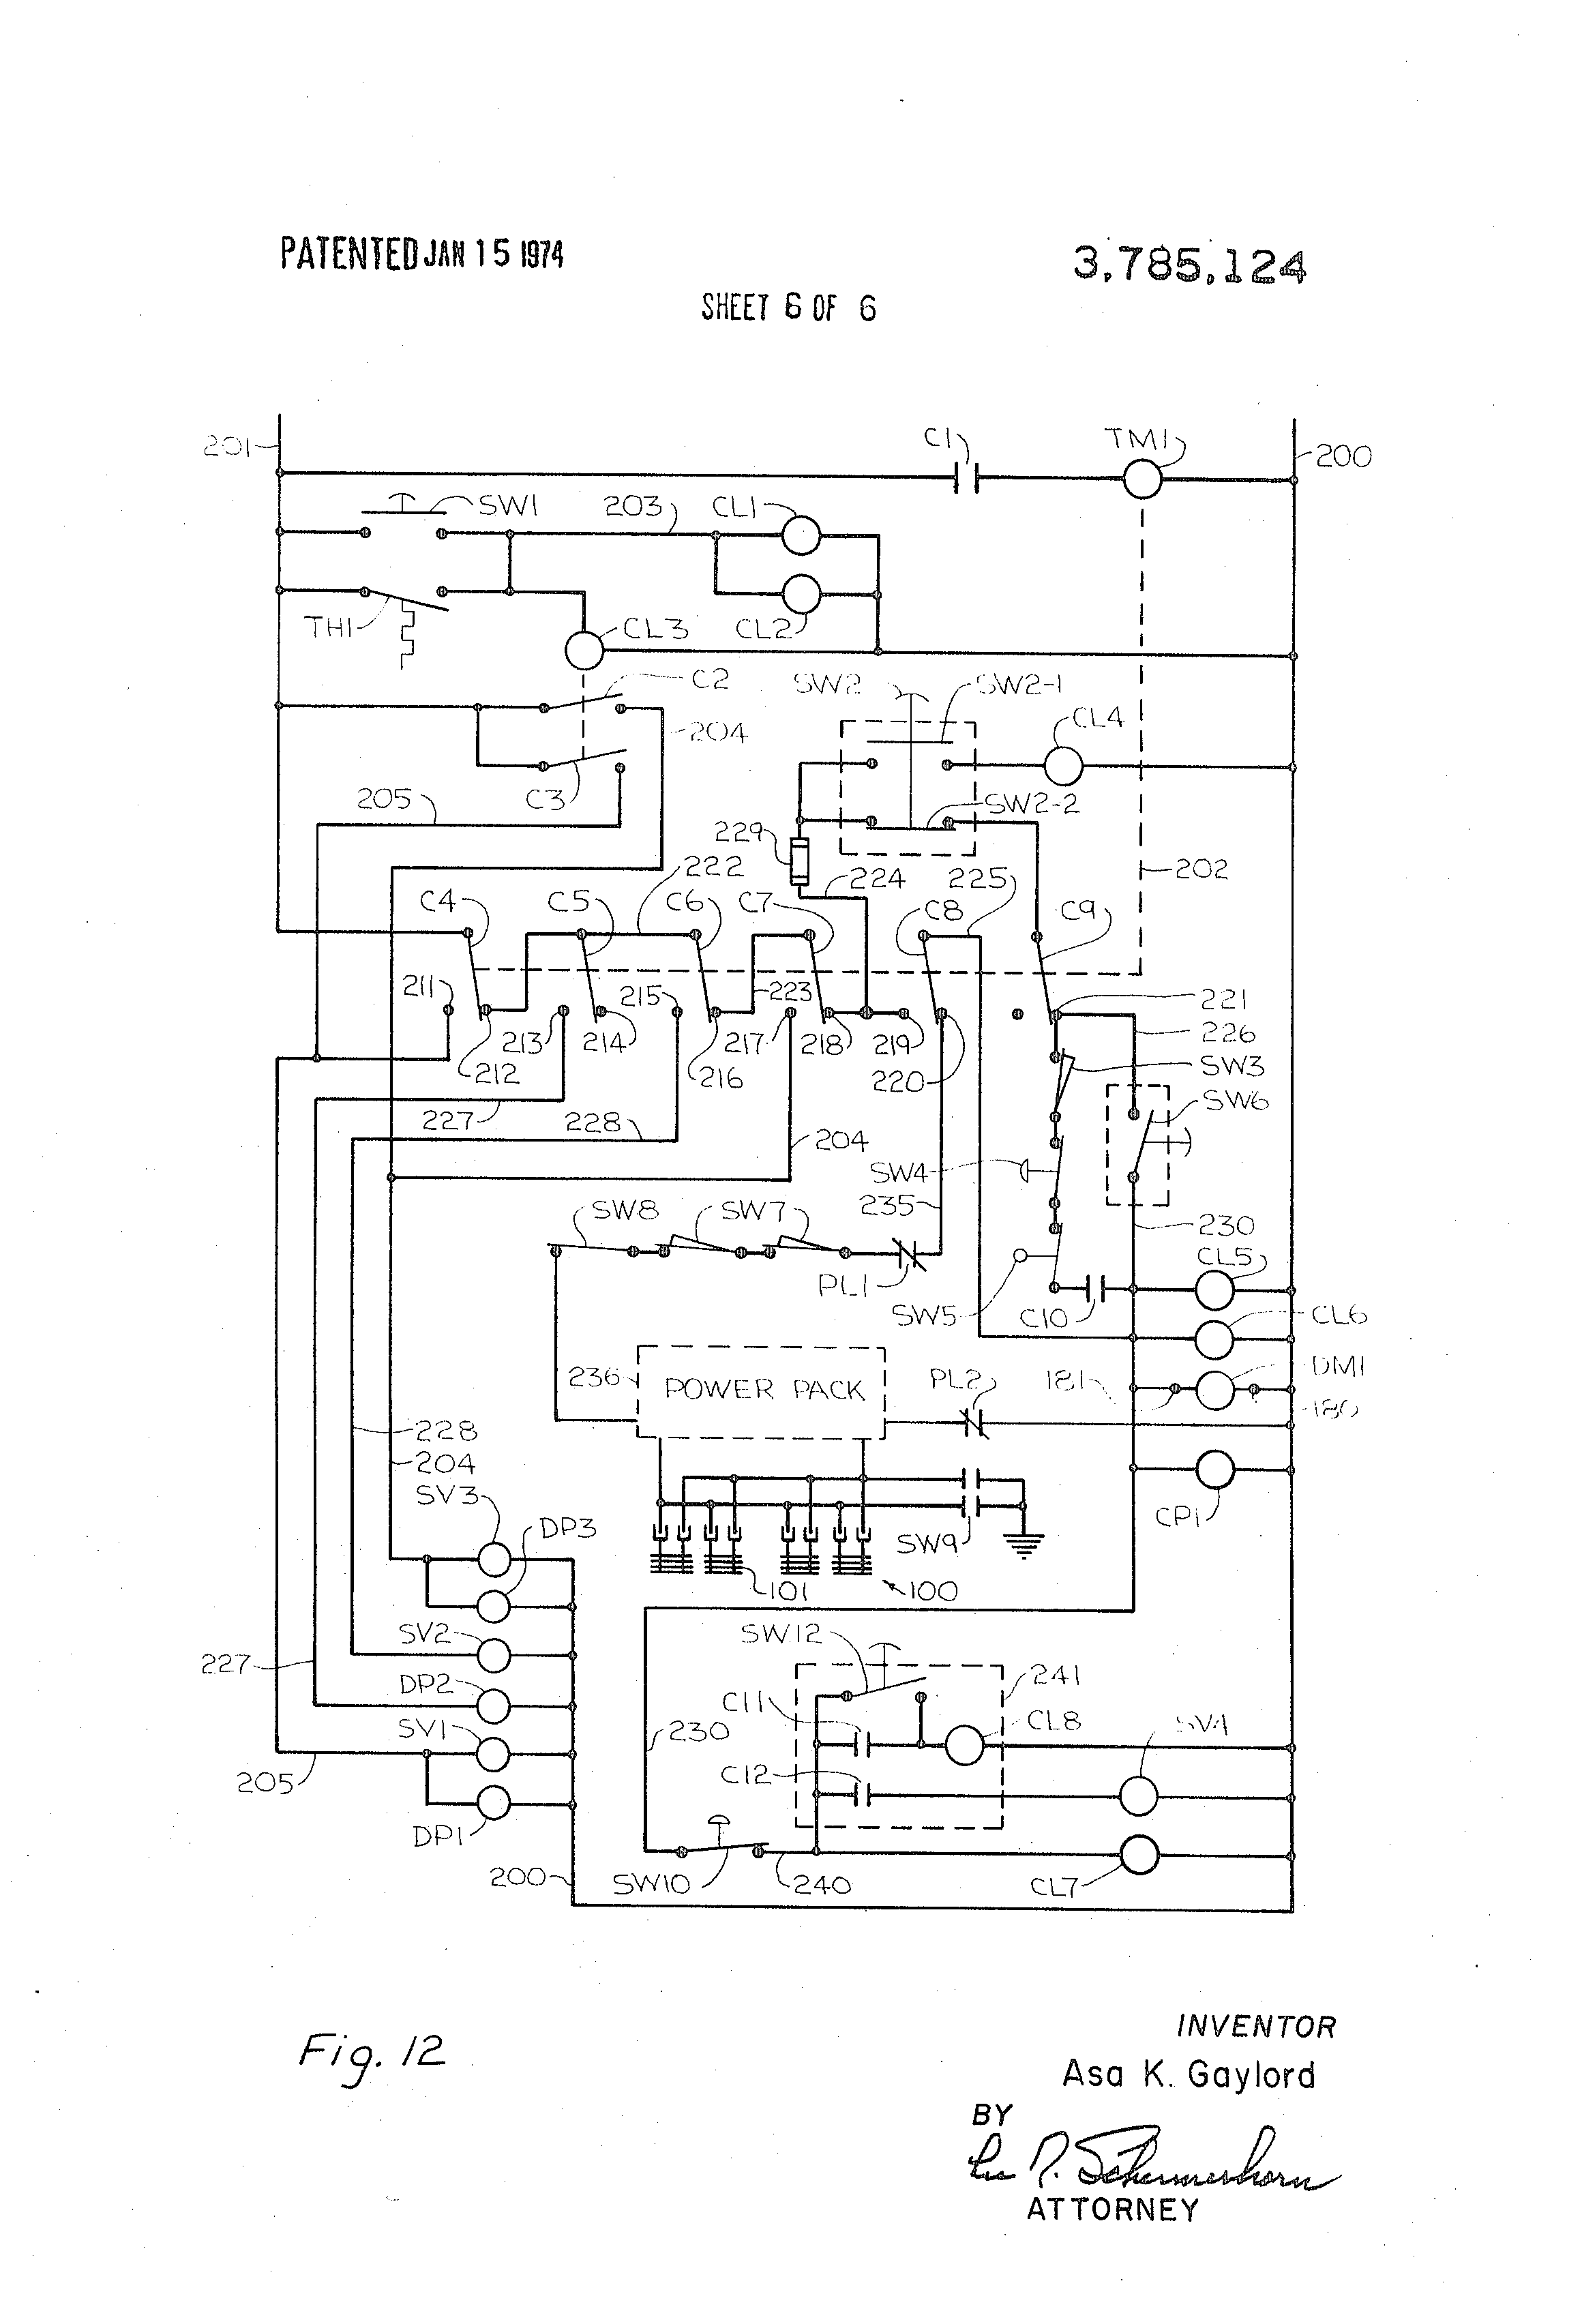 kitchen extractor fan wiring diagram wiring diagrams kitchen extractor fan wiring diagram xcyyxh